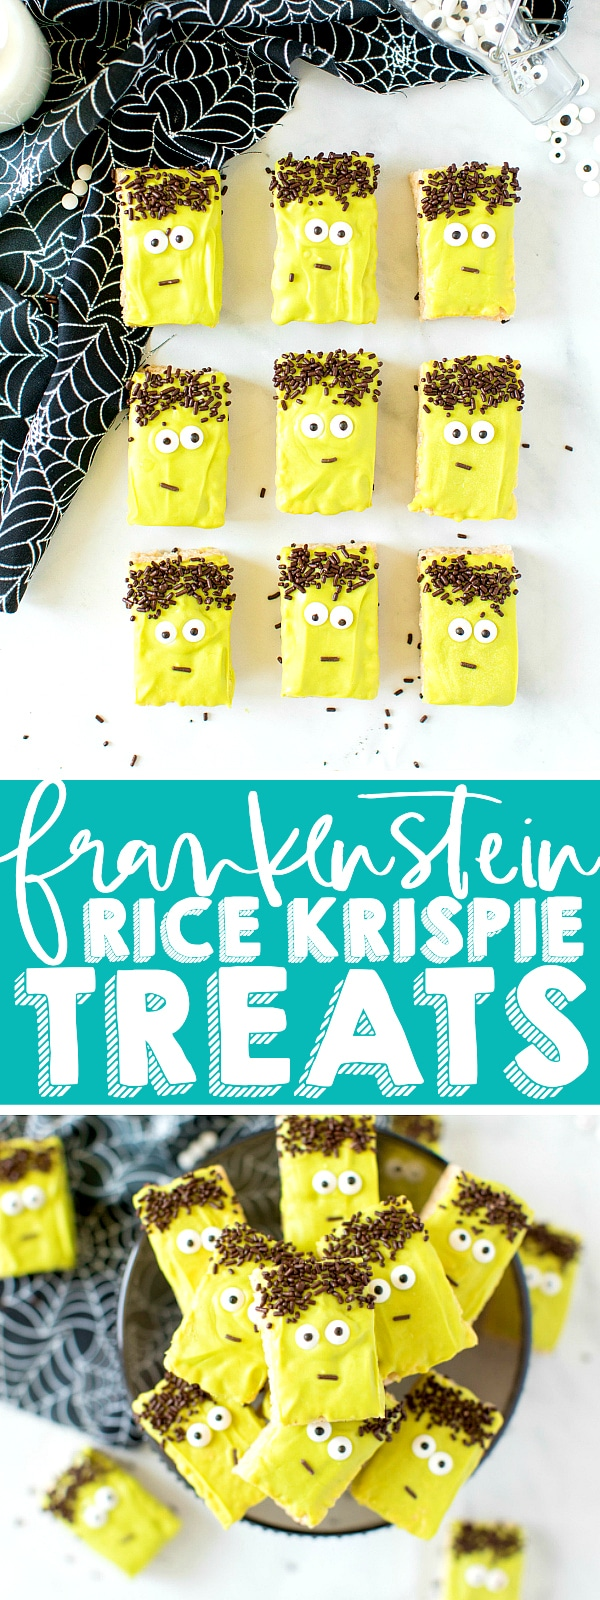 Adorable Frankenstein Rice Krispie Treats that everyone will love at your Halloween party! A fun Halloween treat that's easy to make, even for tiny helpers! Can use homemade rice krispie treats or store bought for even faster prep! | The Love Nerds #halloweendessert